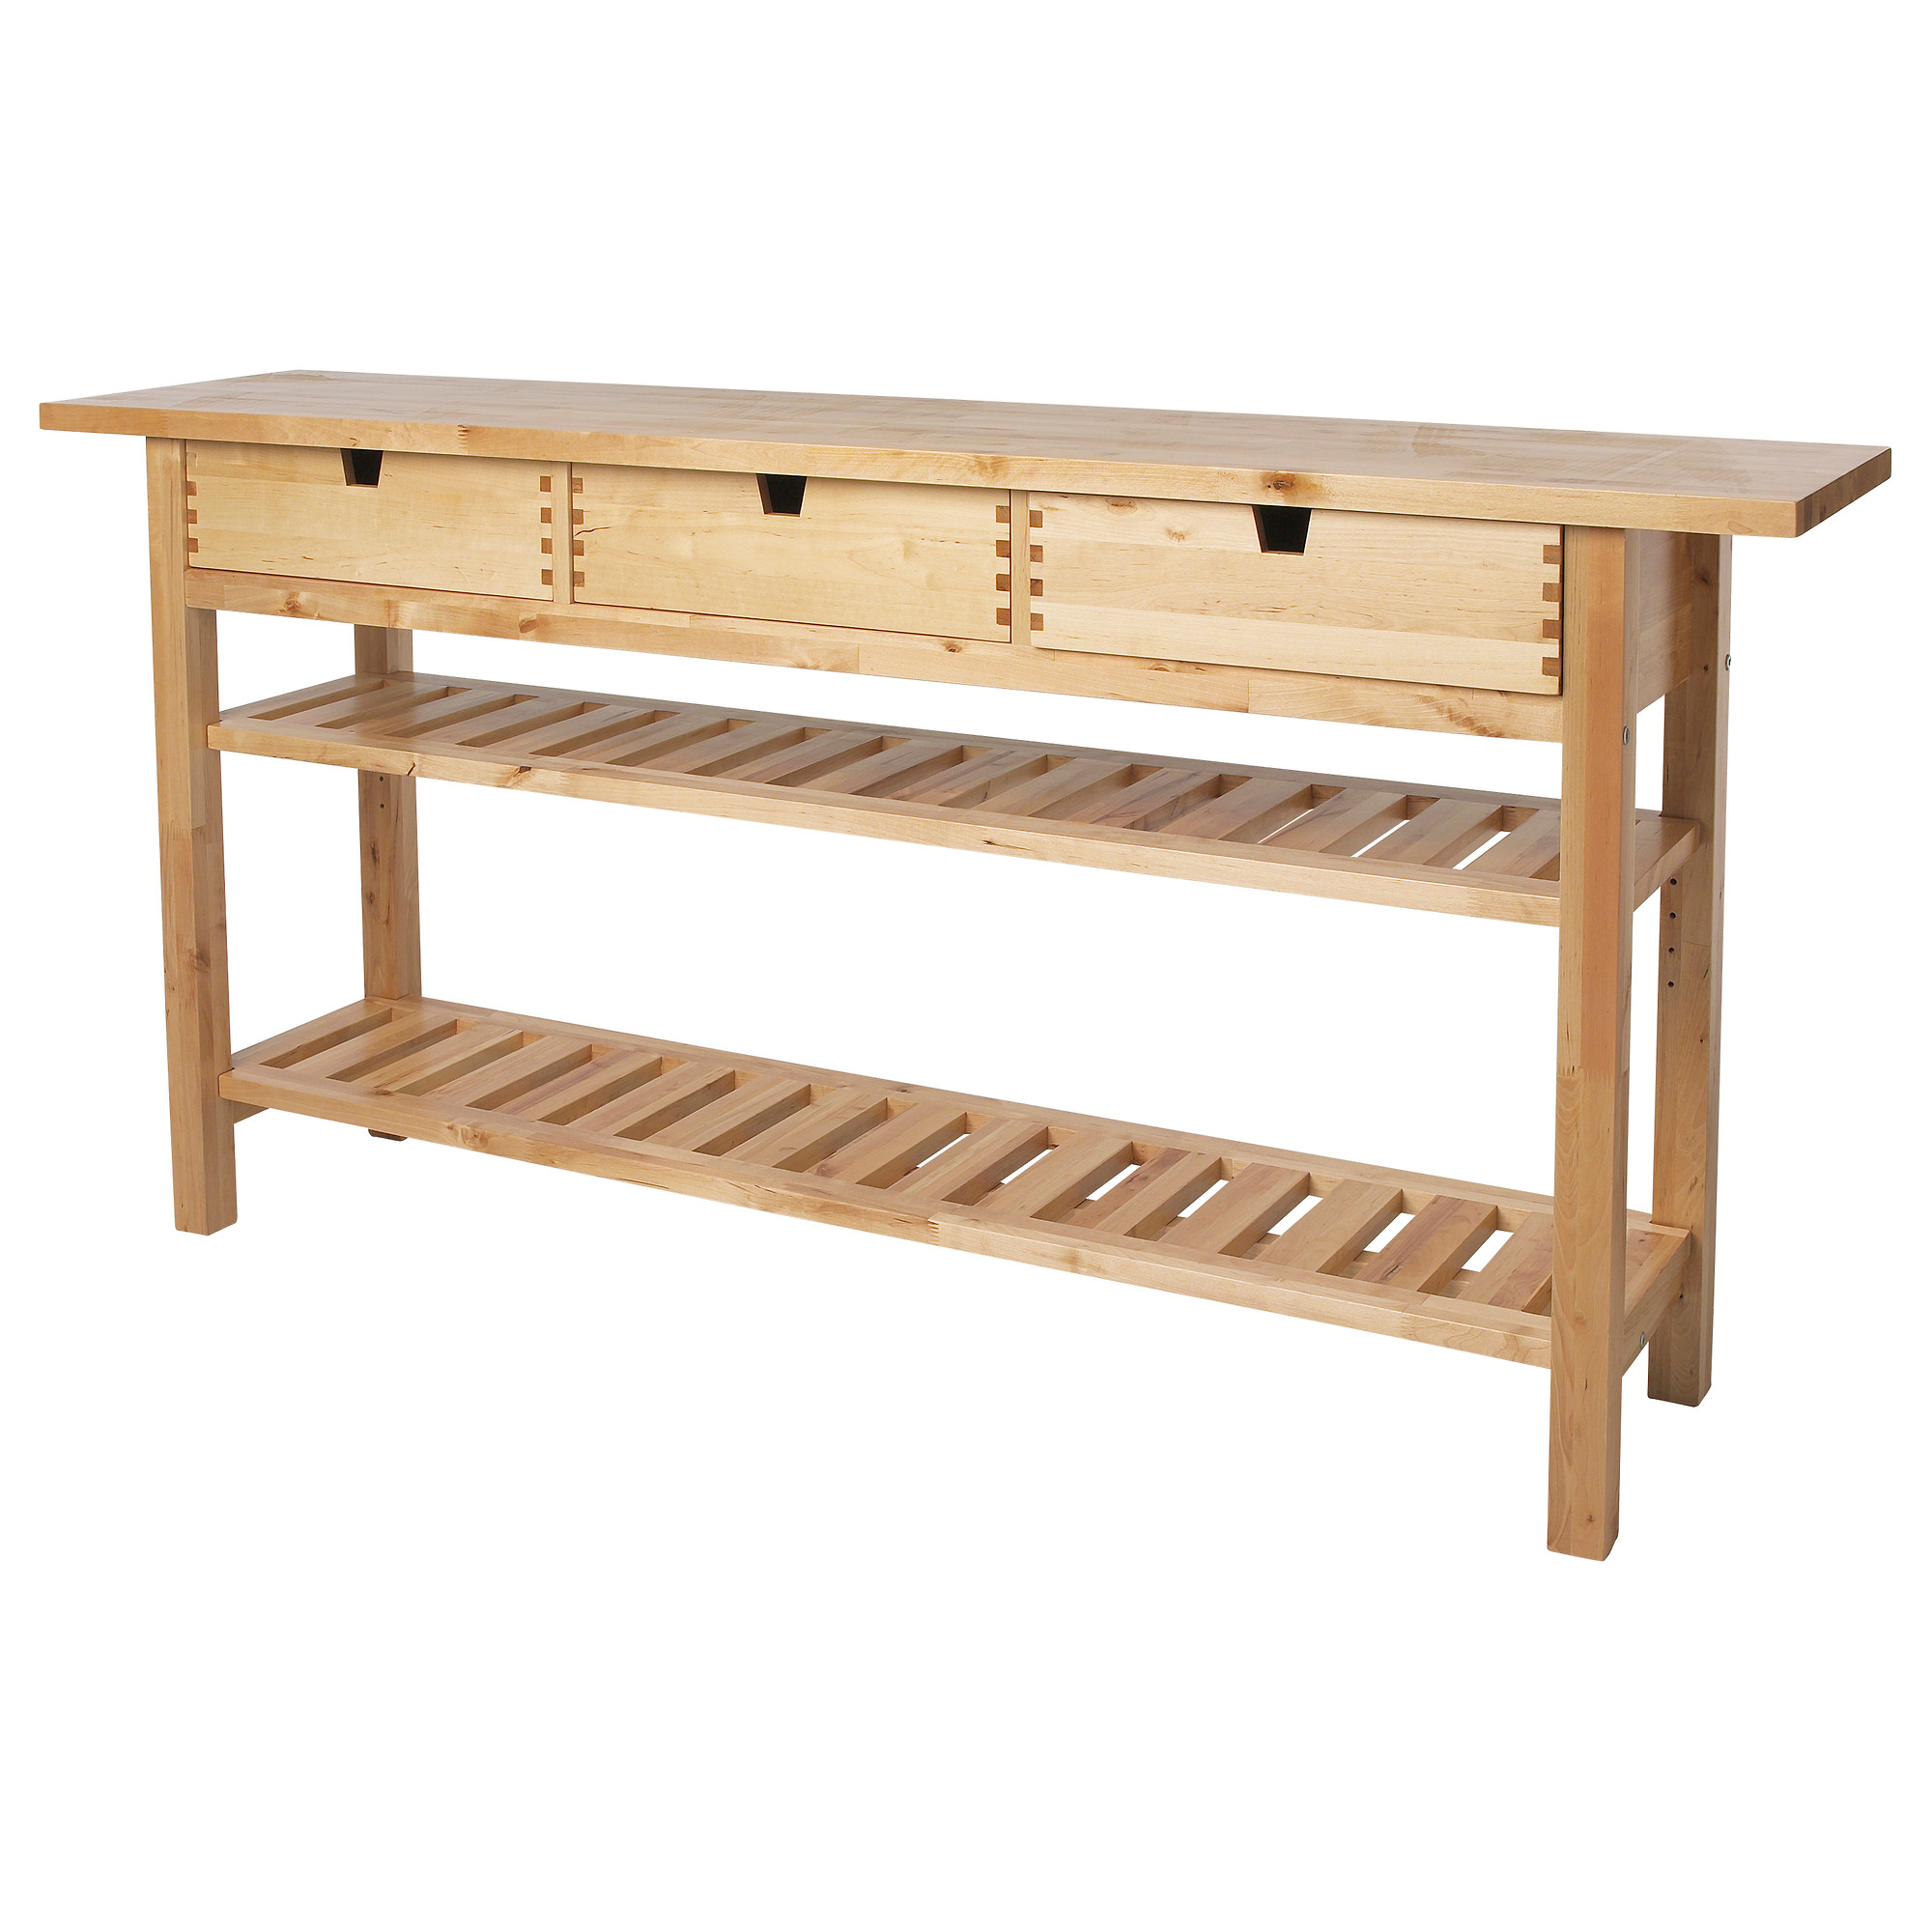 long outdoor teak console table with drawer and double french sideboard ikea pub chairs patio cover large kitchen clocks pier one off coupon code gold bedroom accessories teal